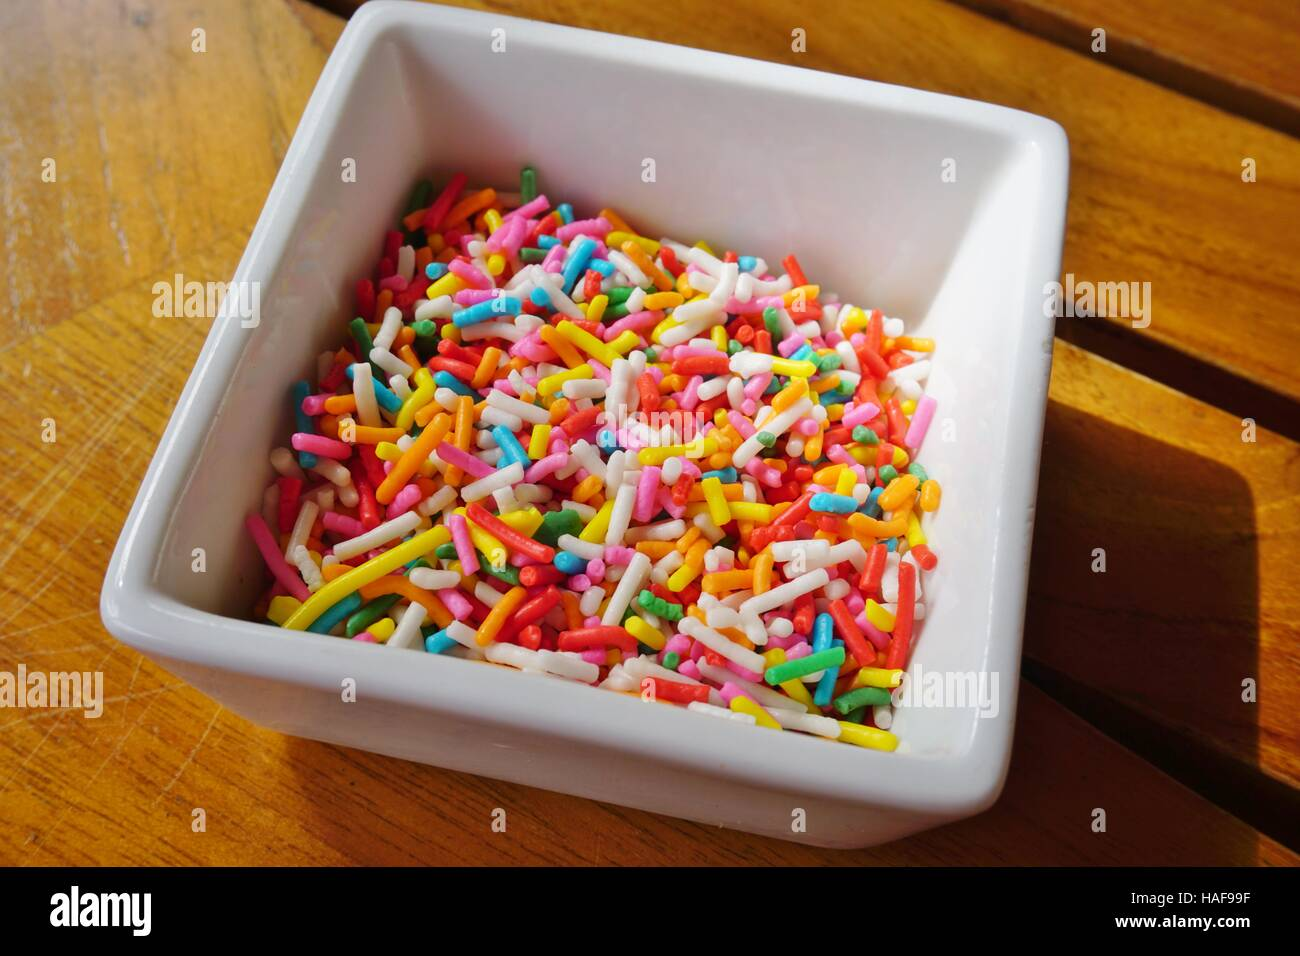 Bowl of colorful edible confetti sprinkles Stock Photo